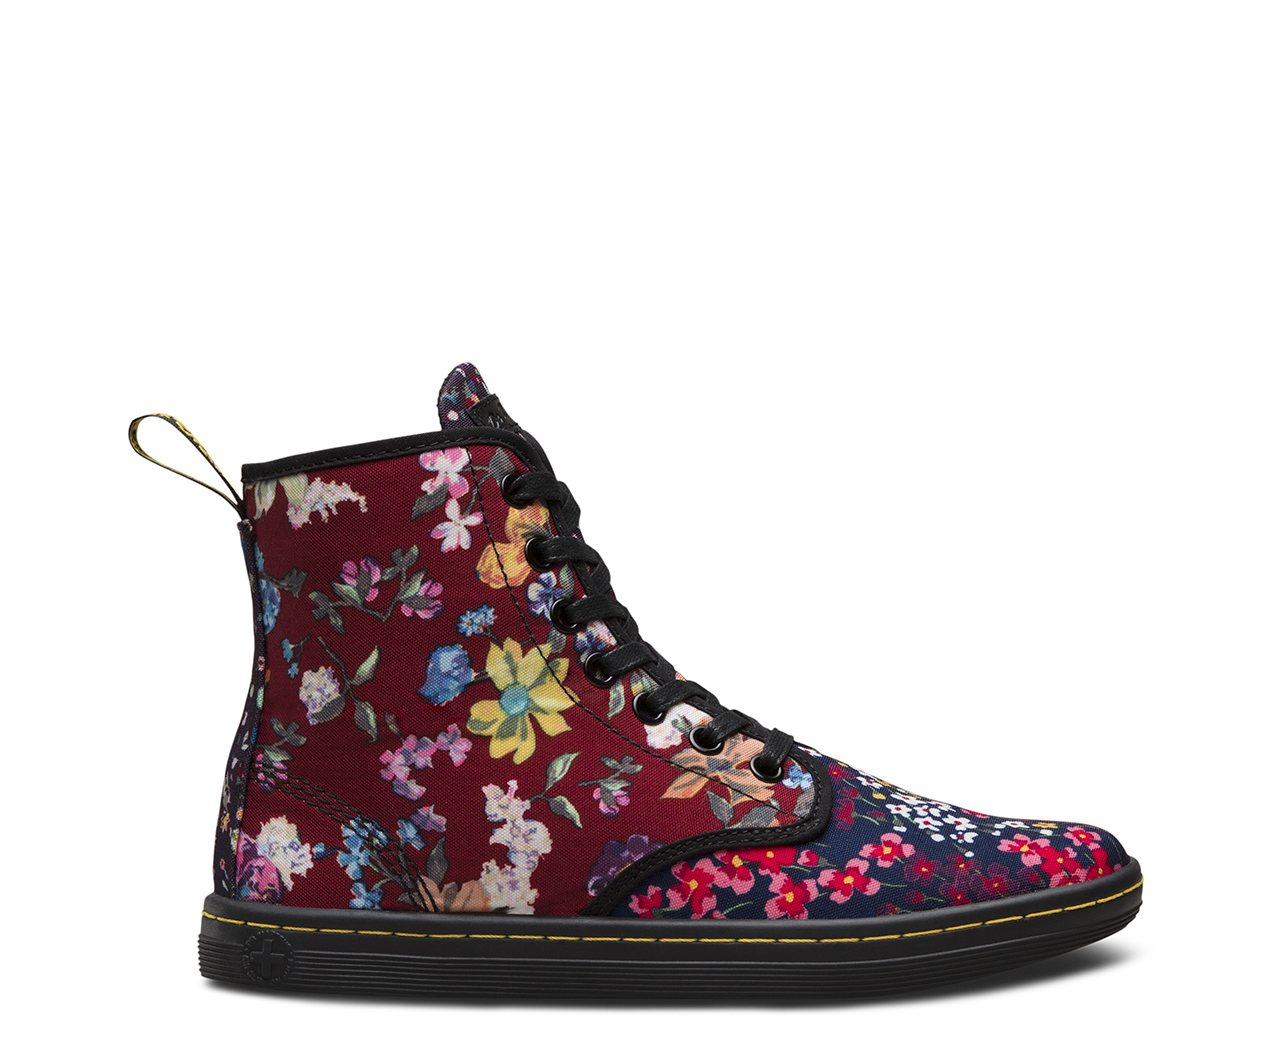 Floral shoreditch sale boots official dr martens store mightylinksfo Image collections